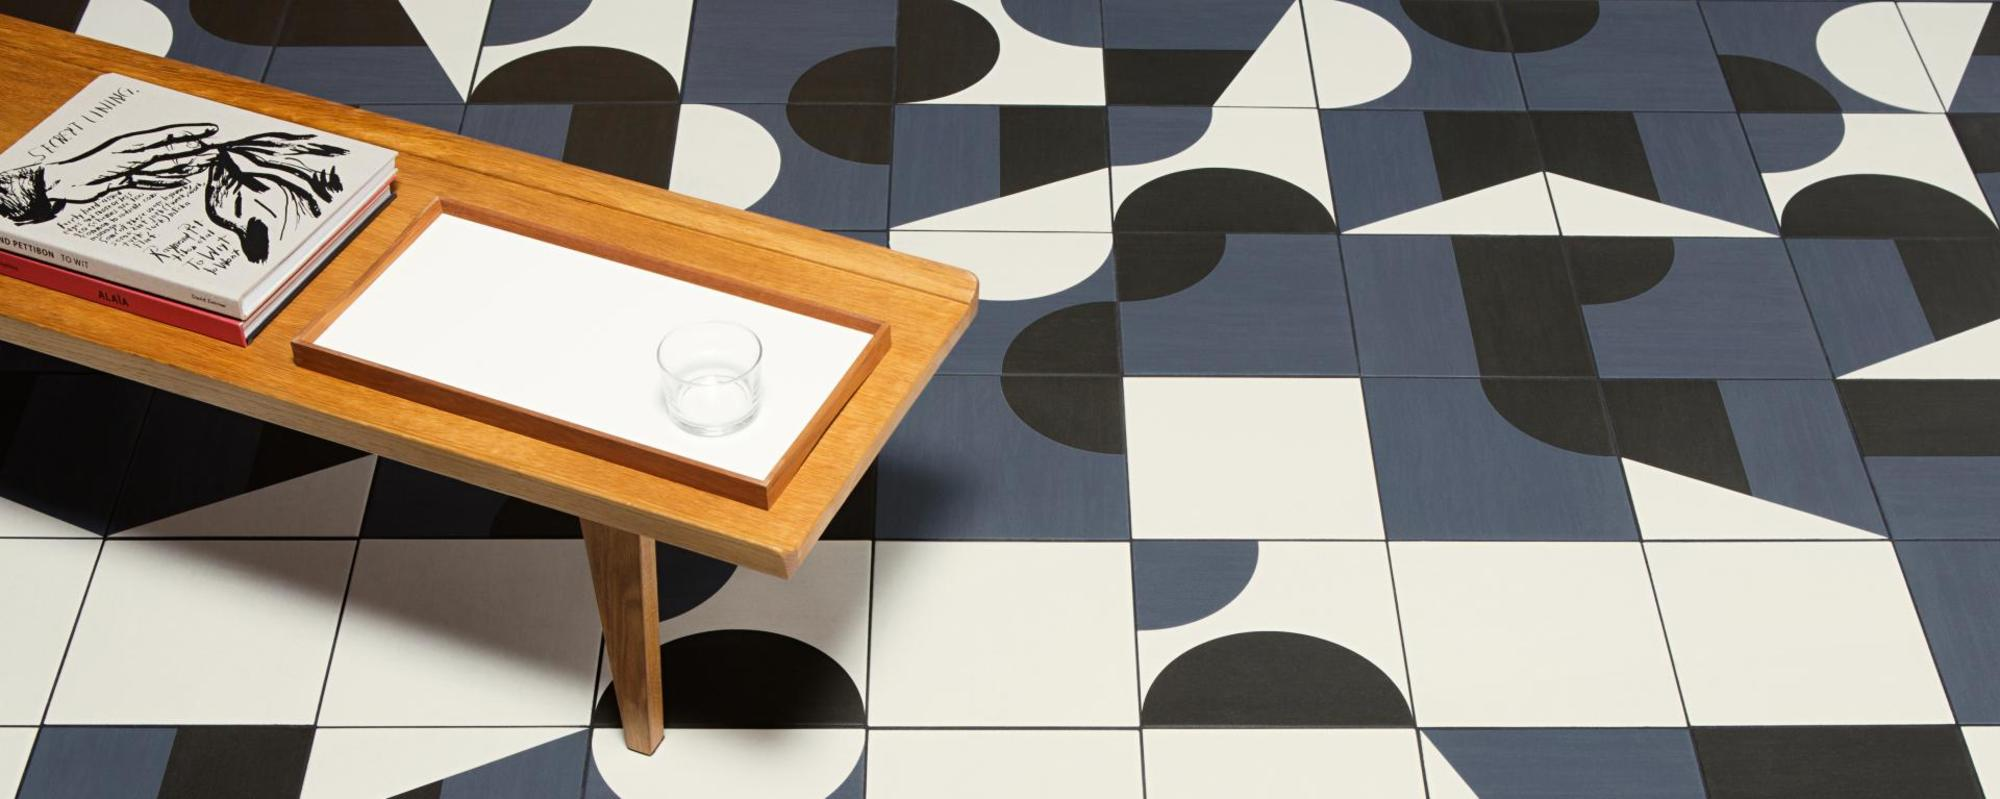 MUTINA ceramiche & design Puzzle Edward Barber Osgerby Jay anglesey + powder